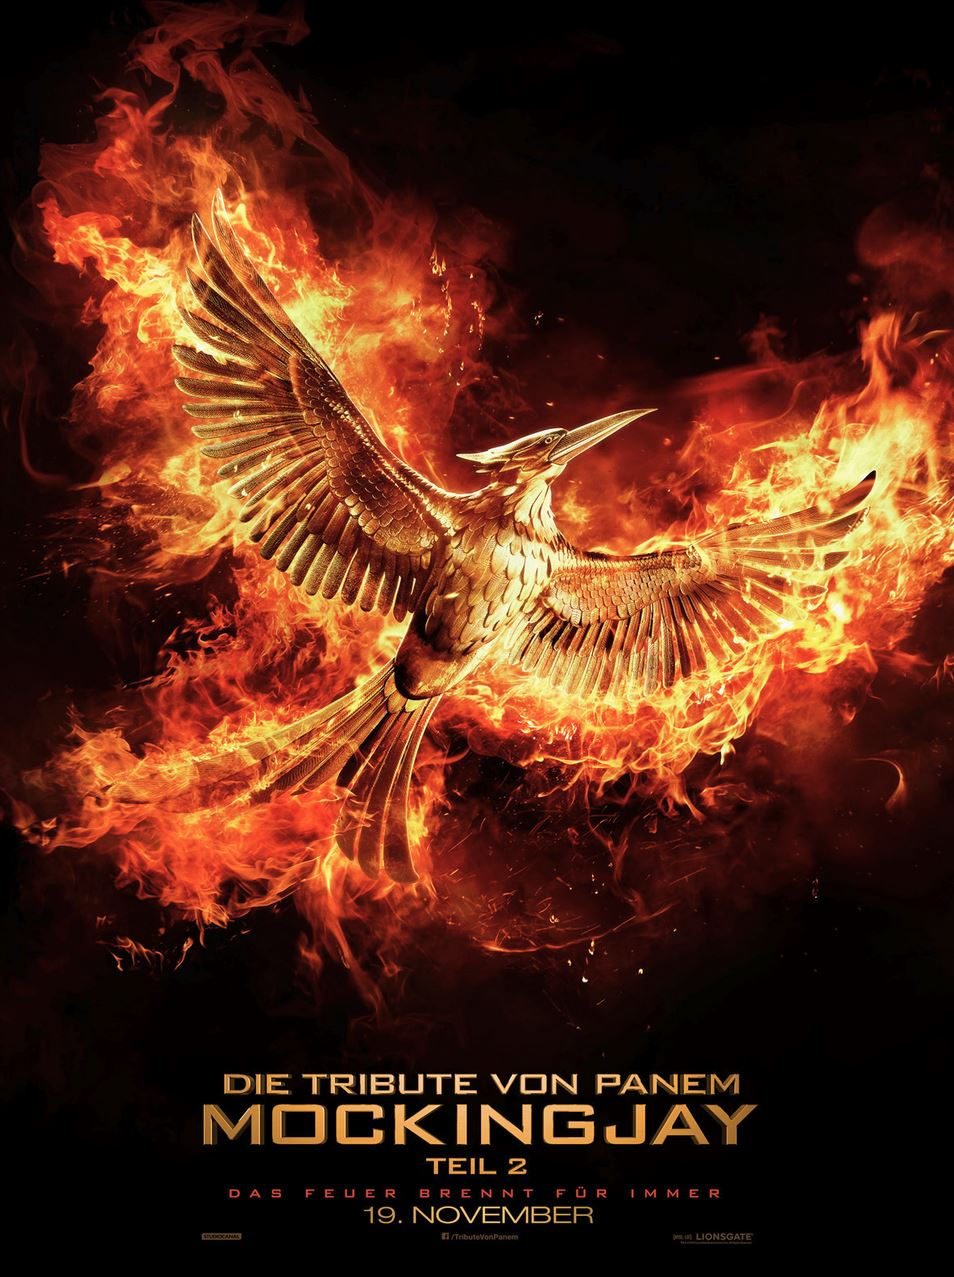 DIE TRIBUTE VON PANEM MOCKINGJAY